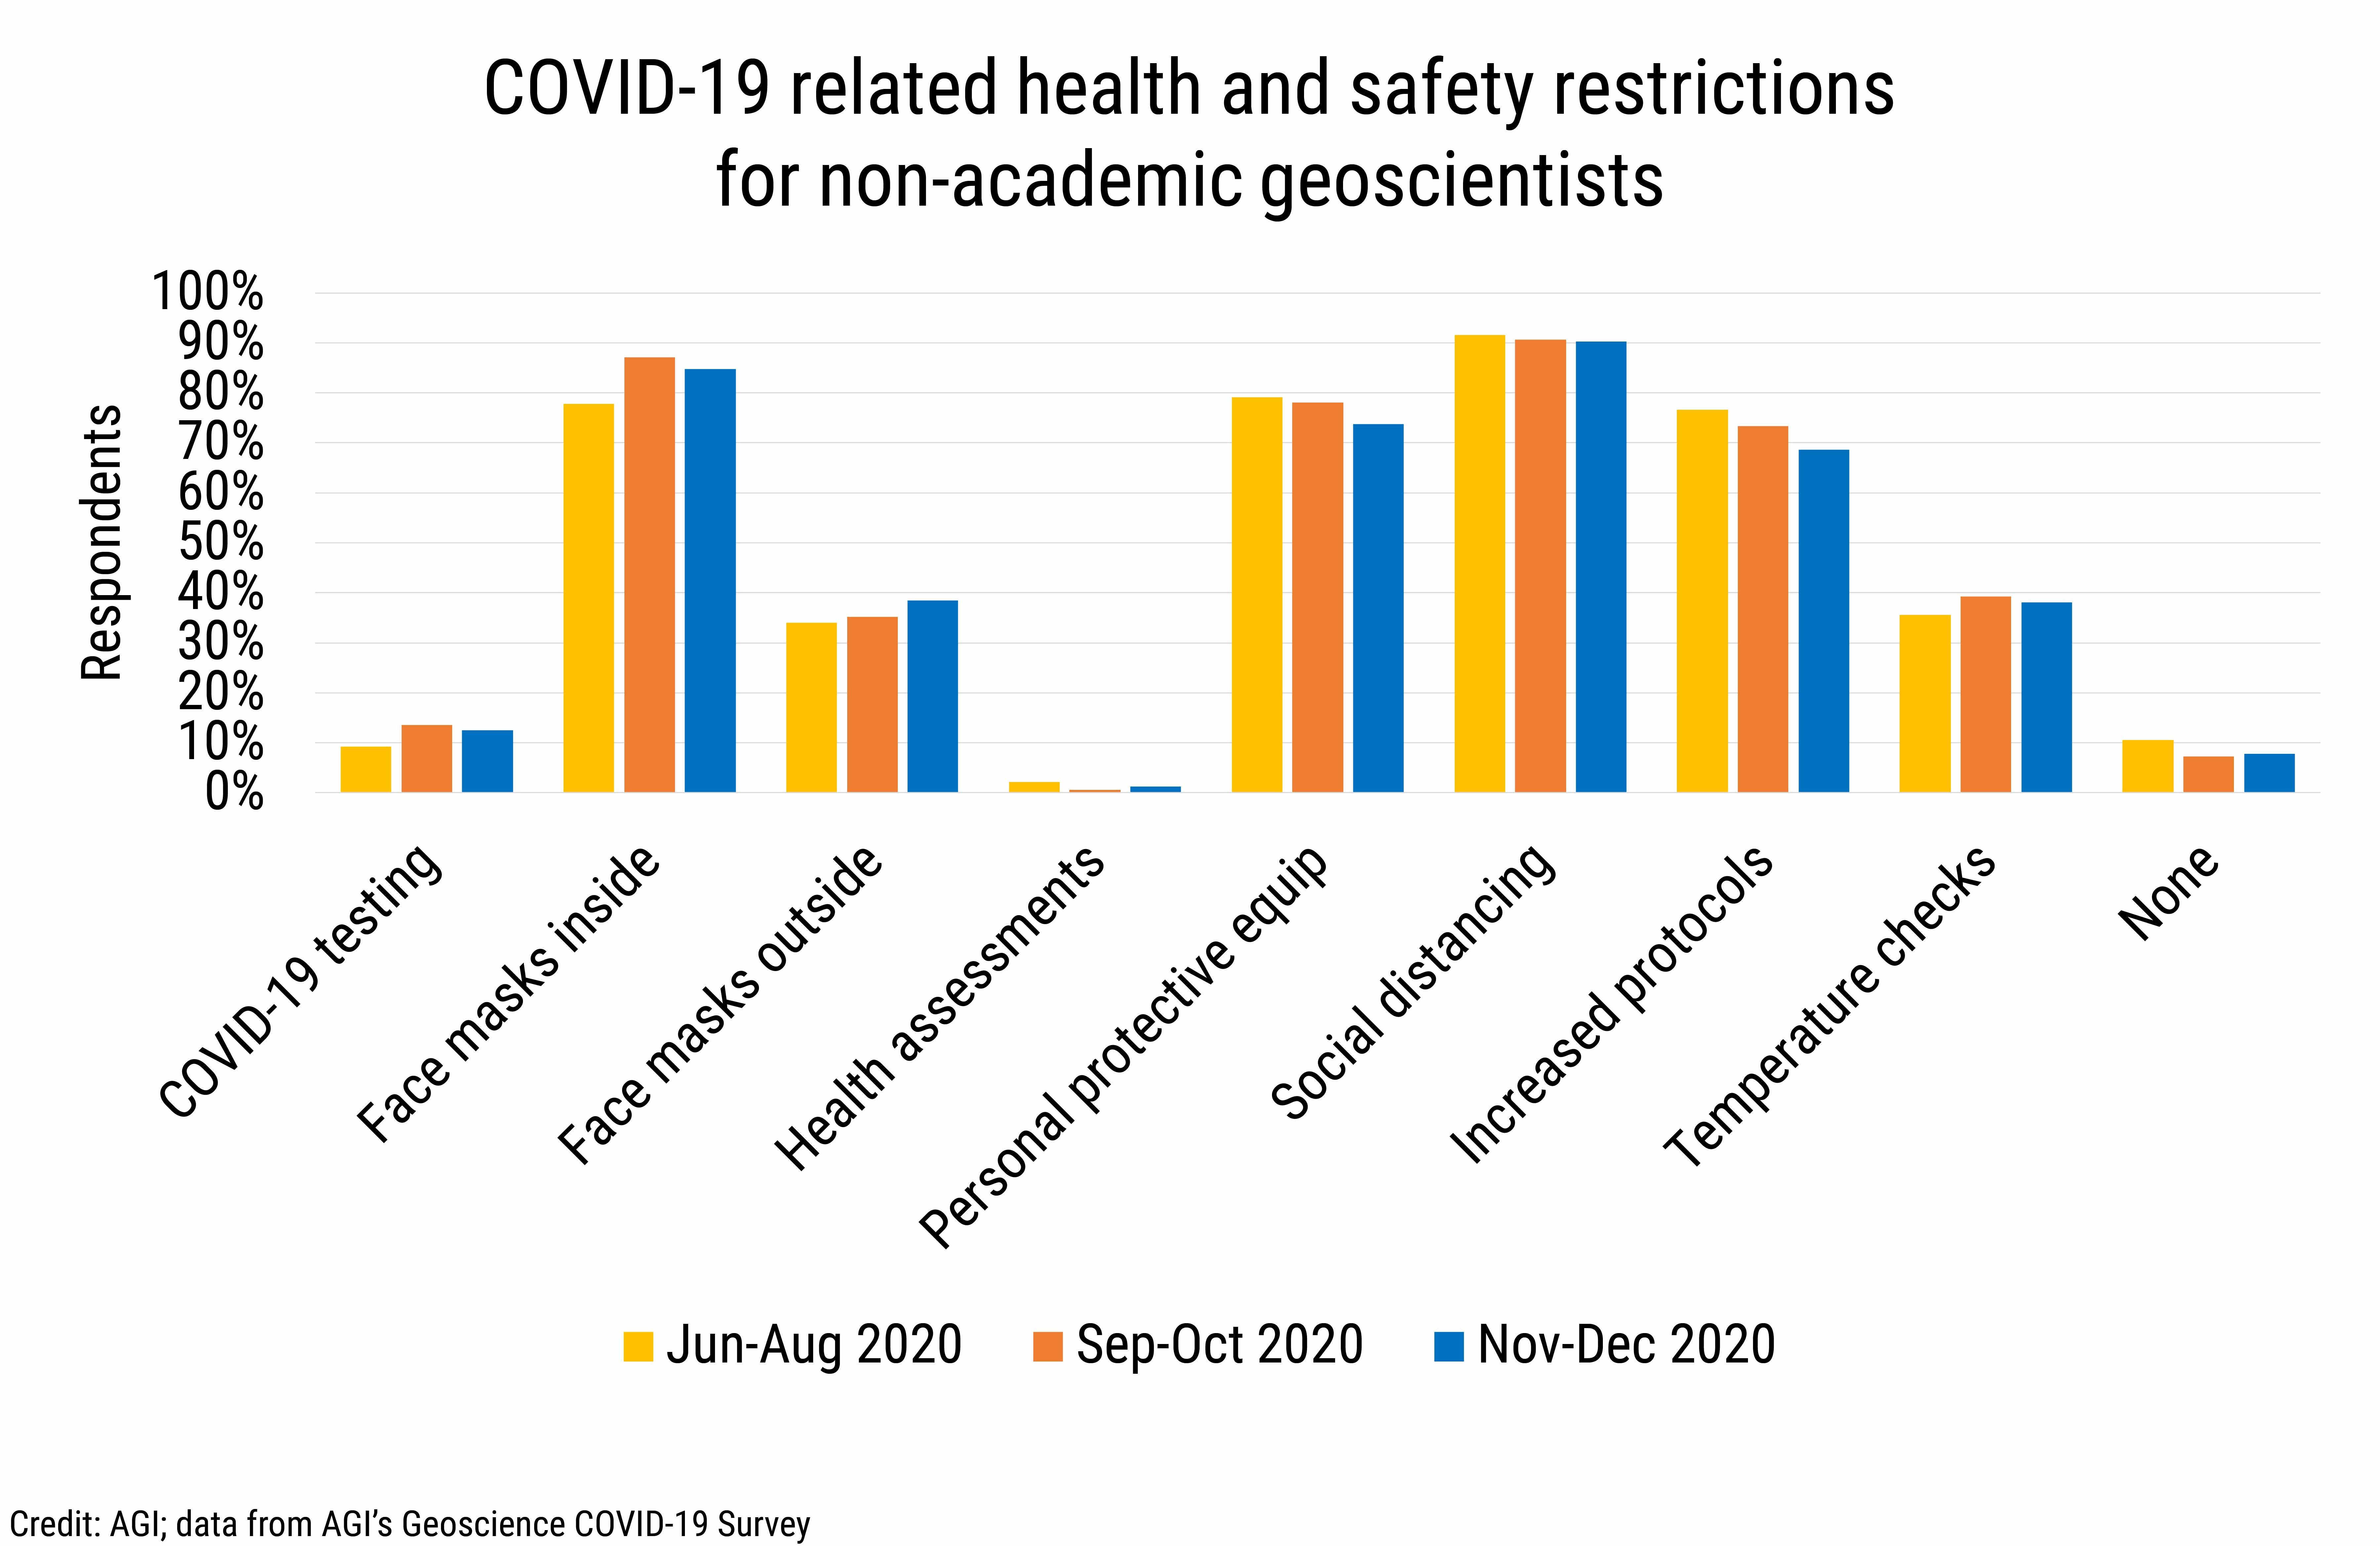 DB_2021-002 chart 07: COVID-19 related health and safety restrictions for non-academic geoscientists (Credit: AGI; data from AGI's Geoscience COVID-19 Survey)